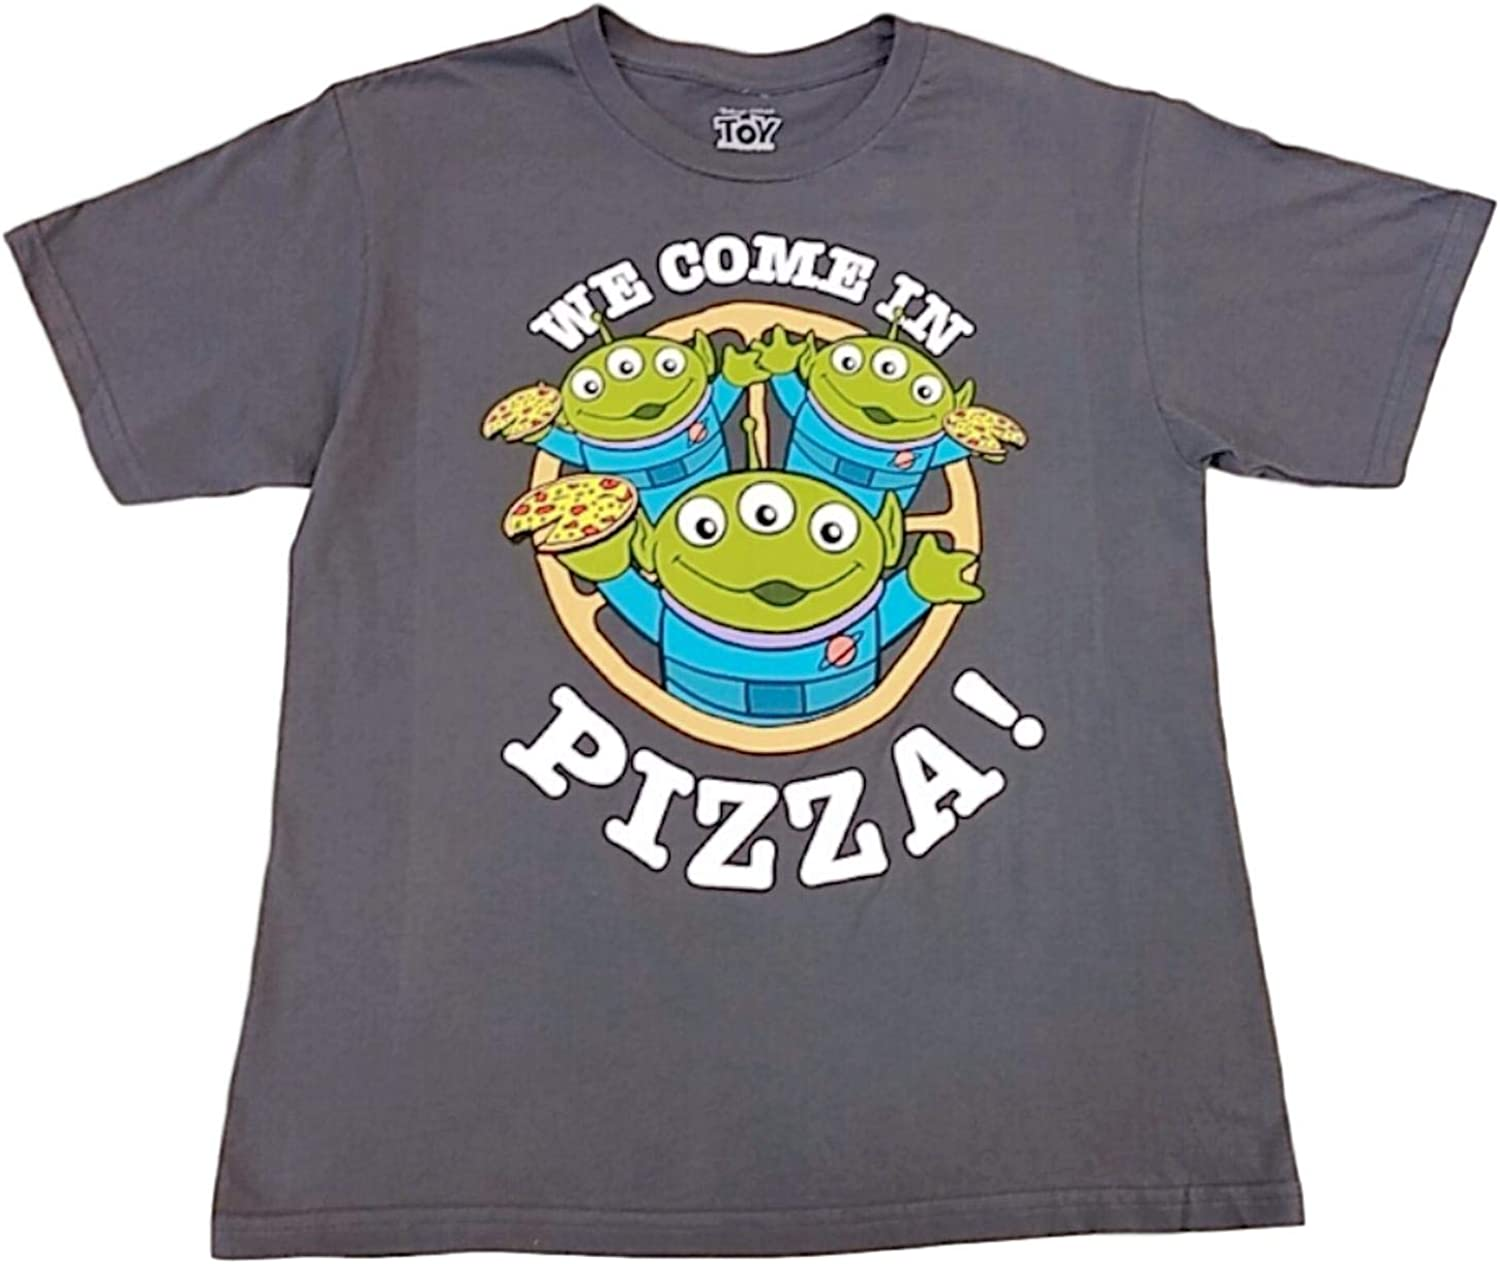 Disney Boys Gray Toy Story Aliens Tee Shirt We Come in Pizza T-Shirt